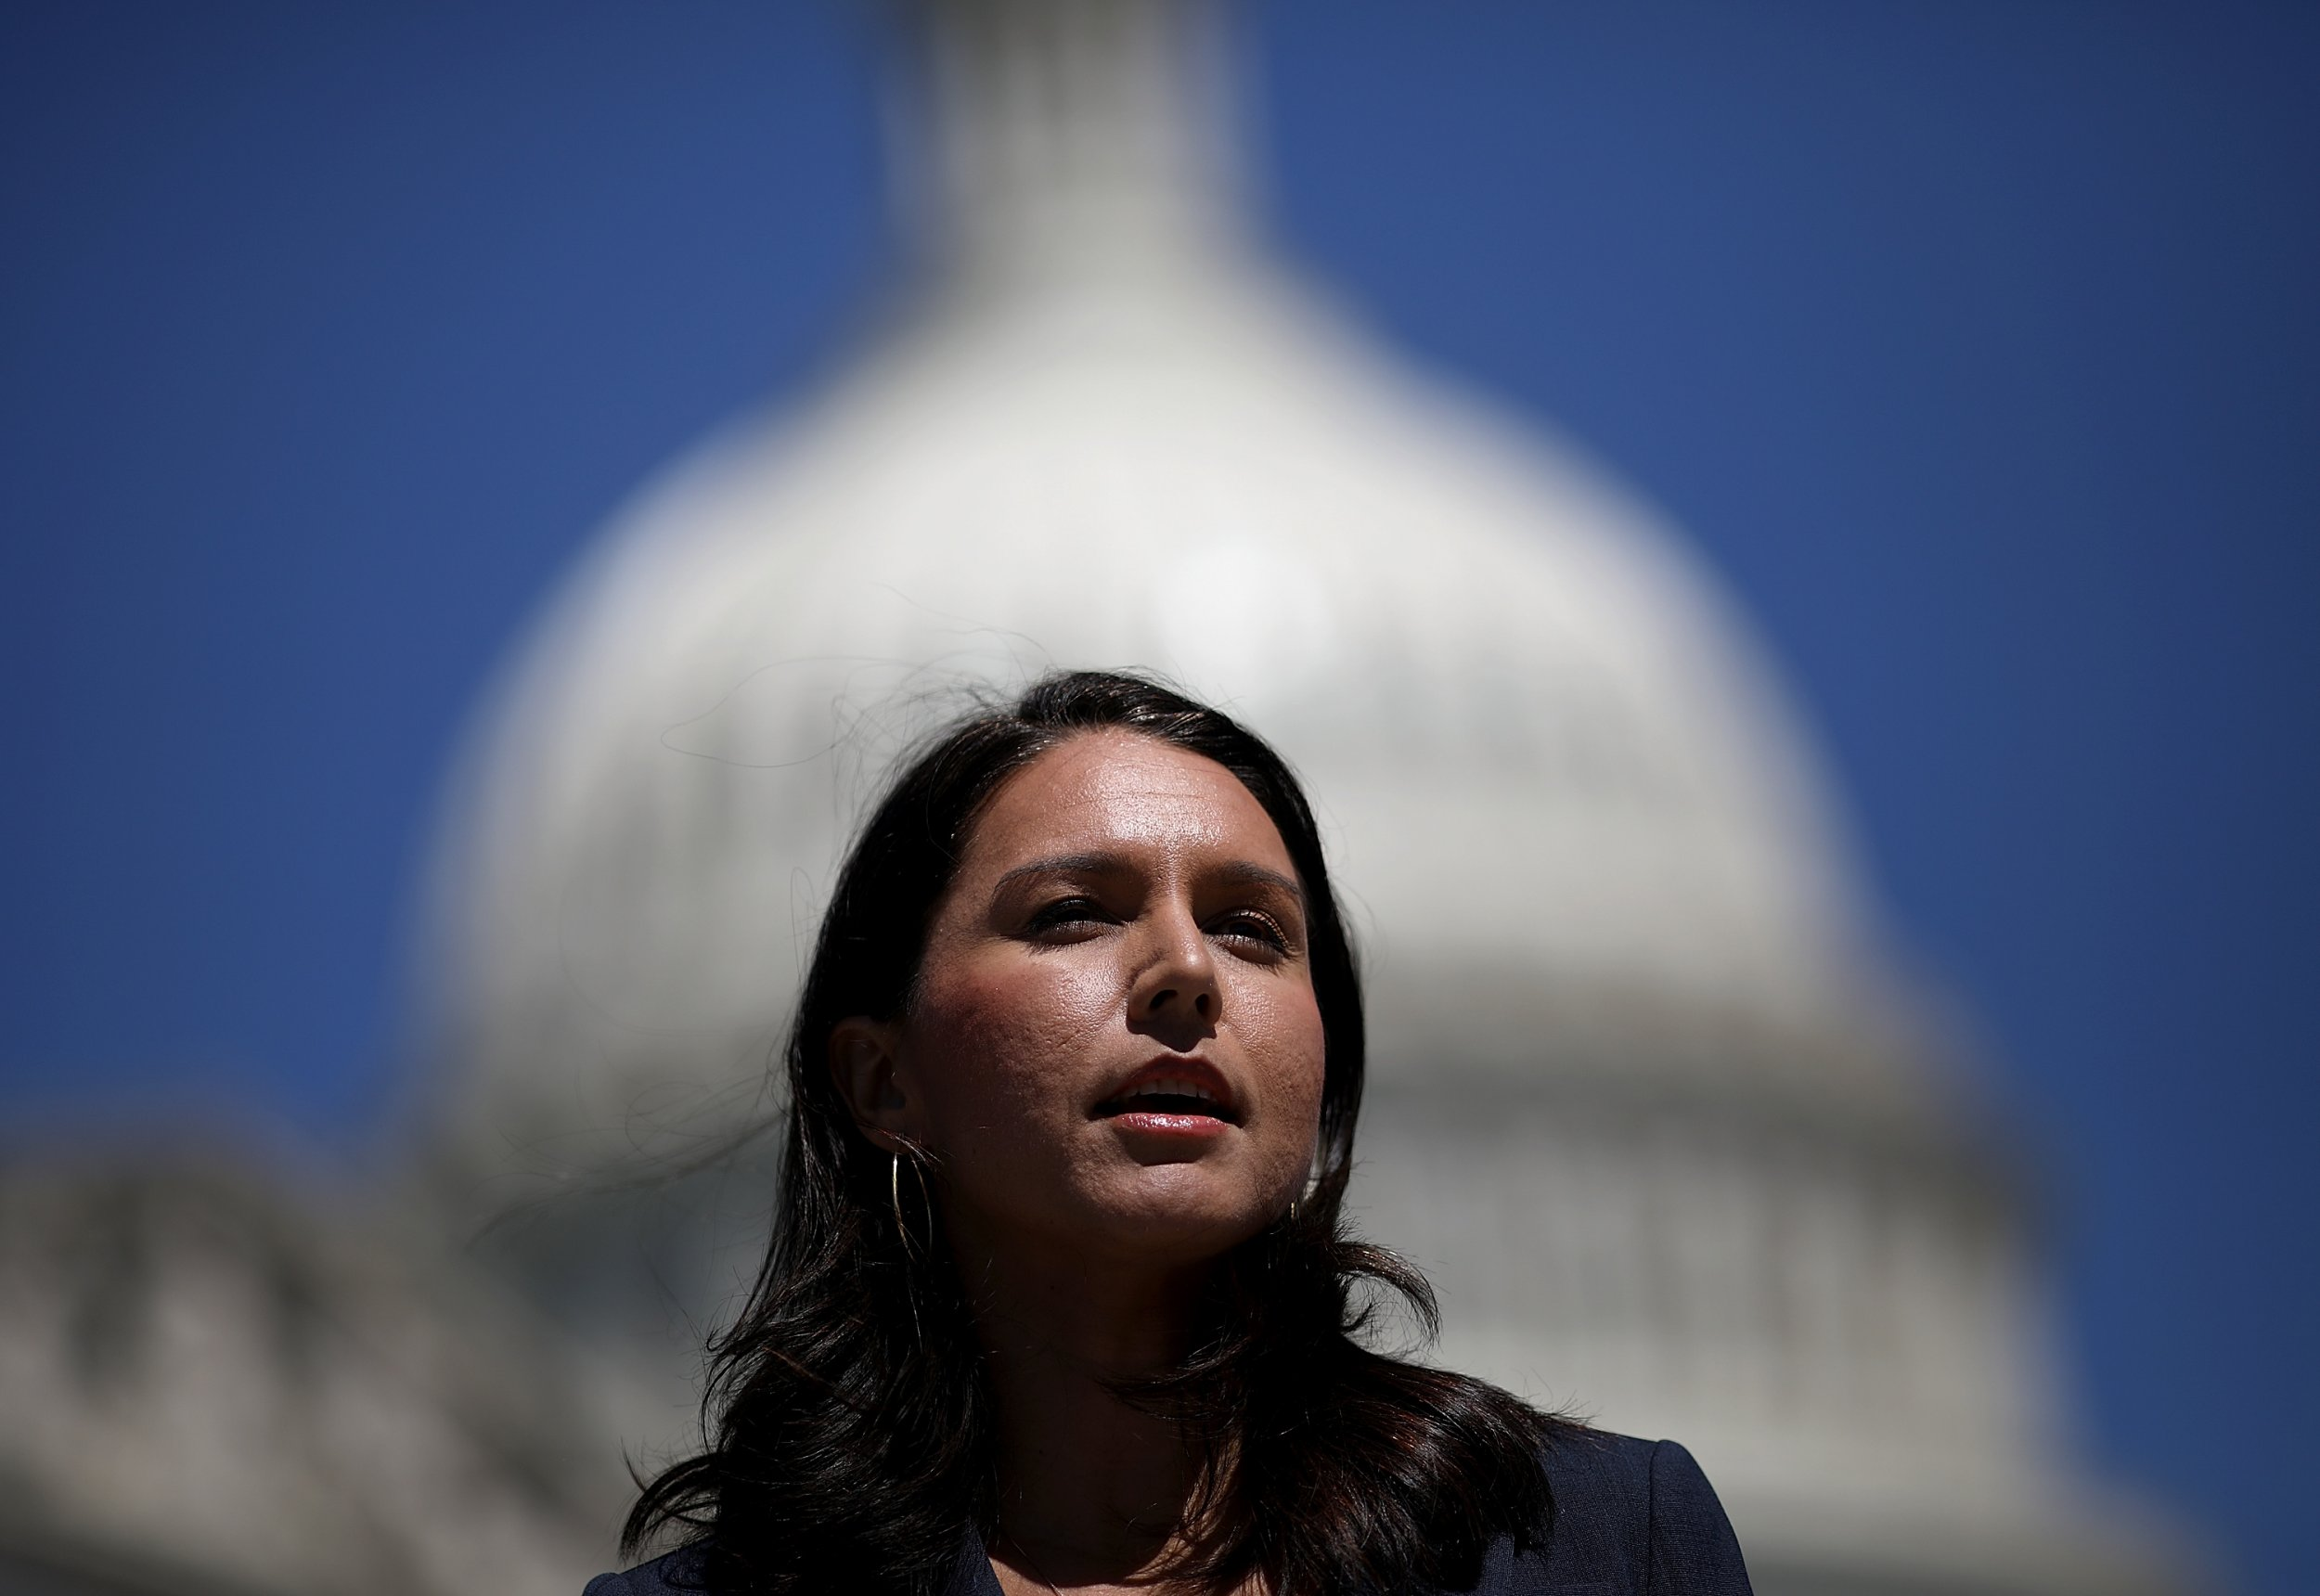 Donald Trump is Saudi Arabia's 'Bitch,' Tulsi Gabbard Says After Khashoggi Statement